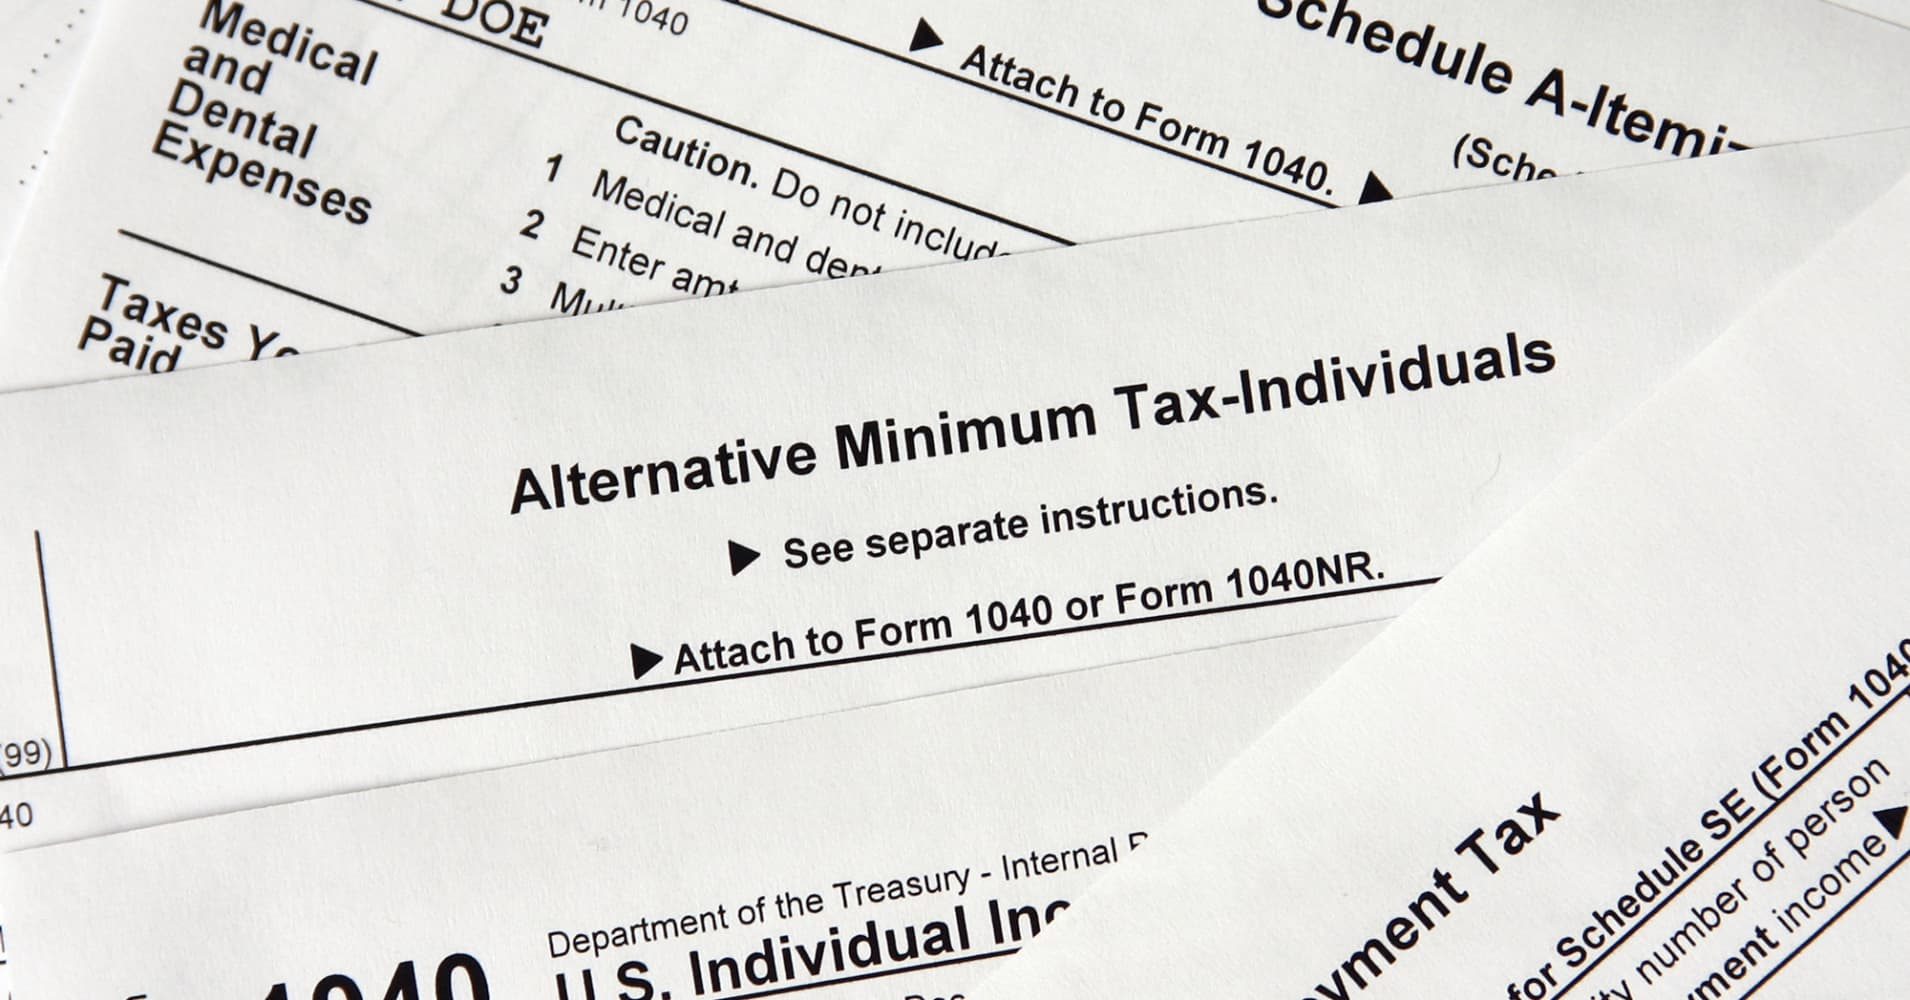 Paying the alternative minimum tax is now unavoidable for many wage earners in high-tax states, but ...